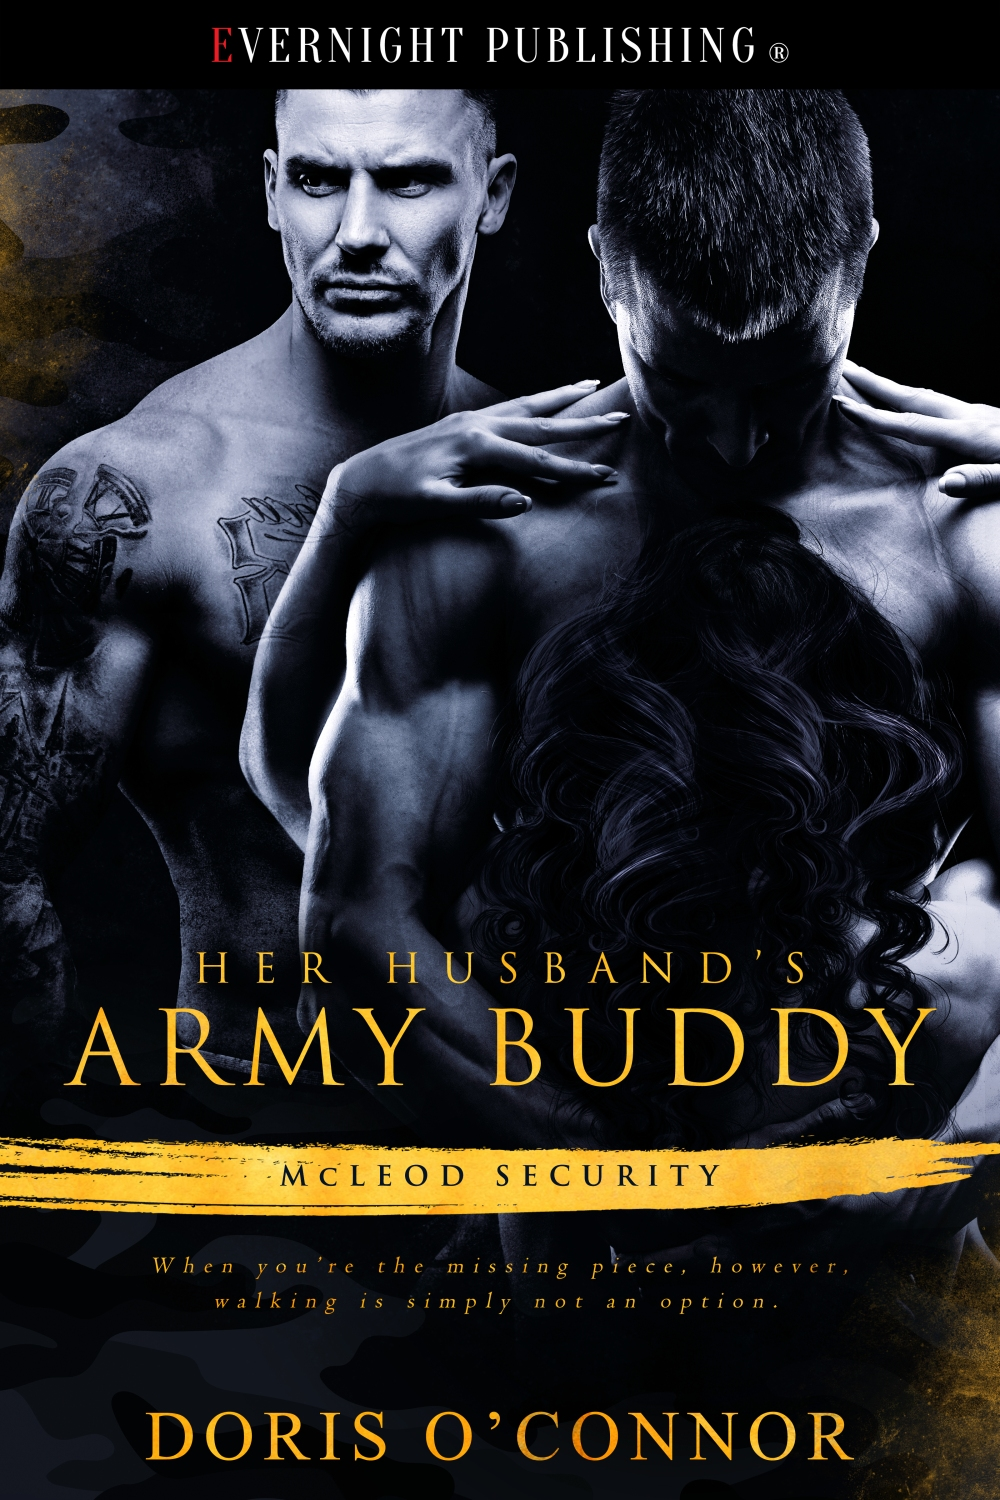 Her-husbands-army-buddy-evernightpublishing-April2018-complete.jpg